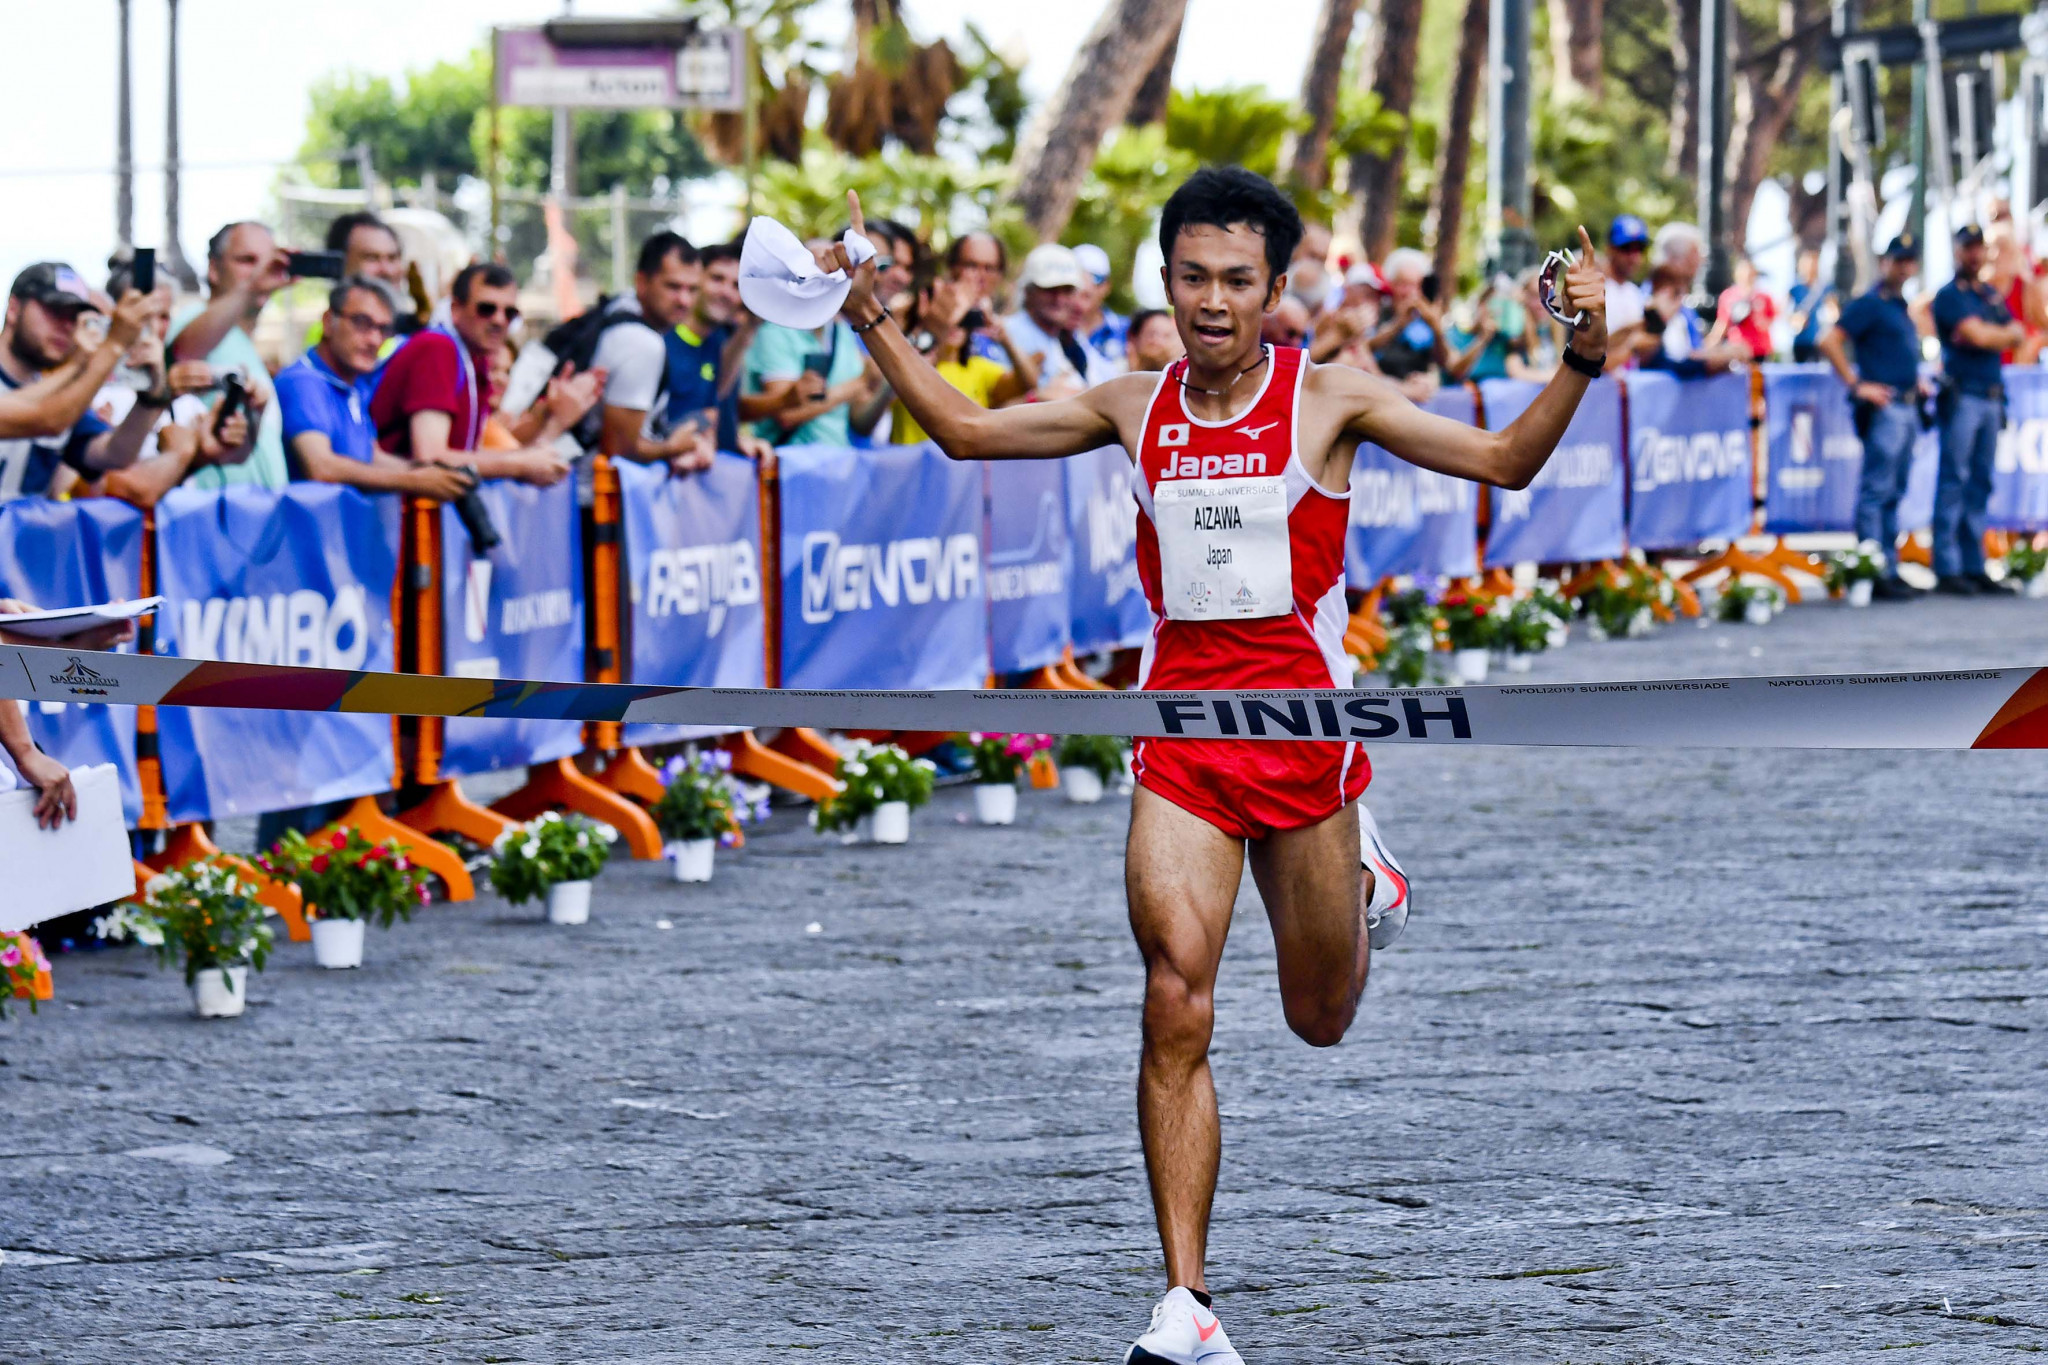 Japan have now claimed all six medals in the Naples 2019 half-marathon, with Akira Aizawa the winning in the men's race in an event where China's Bujie Duo lost his bronze medal after being disqualified ©Naples 2019